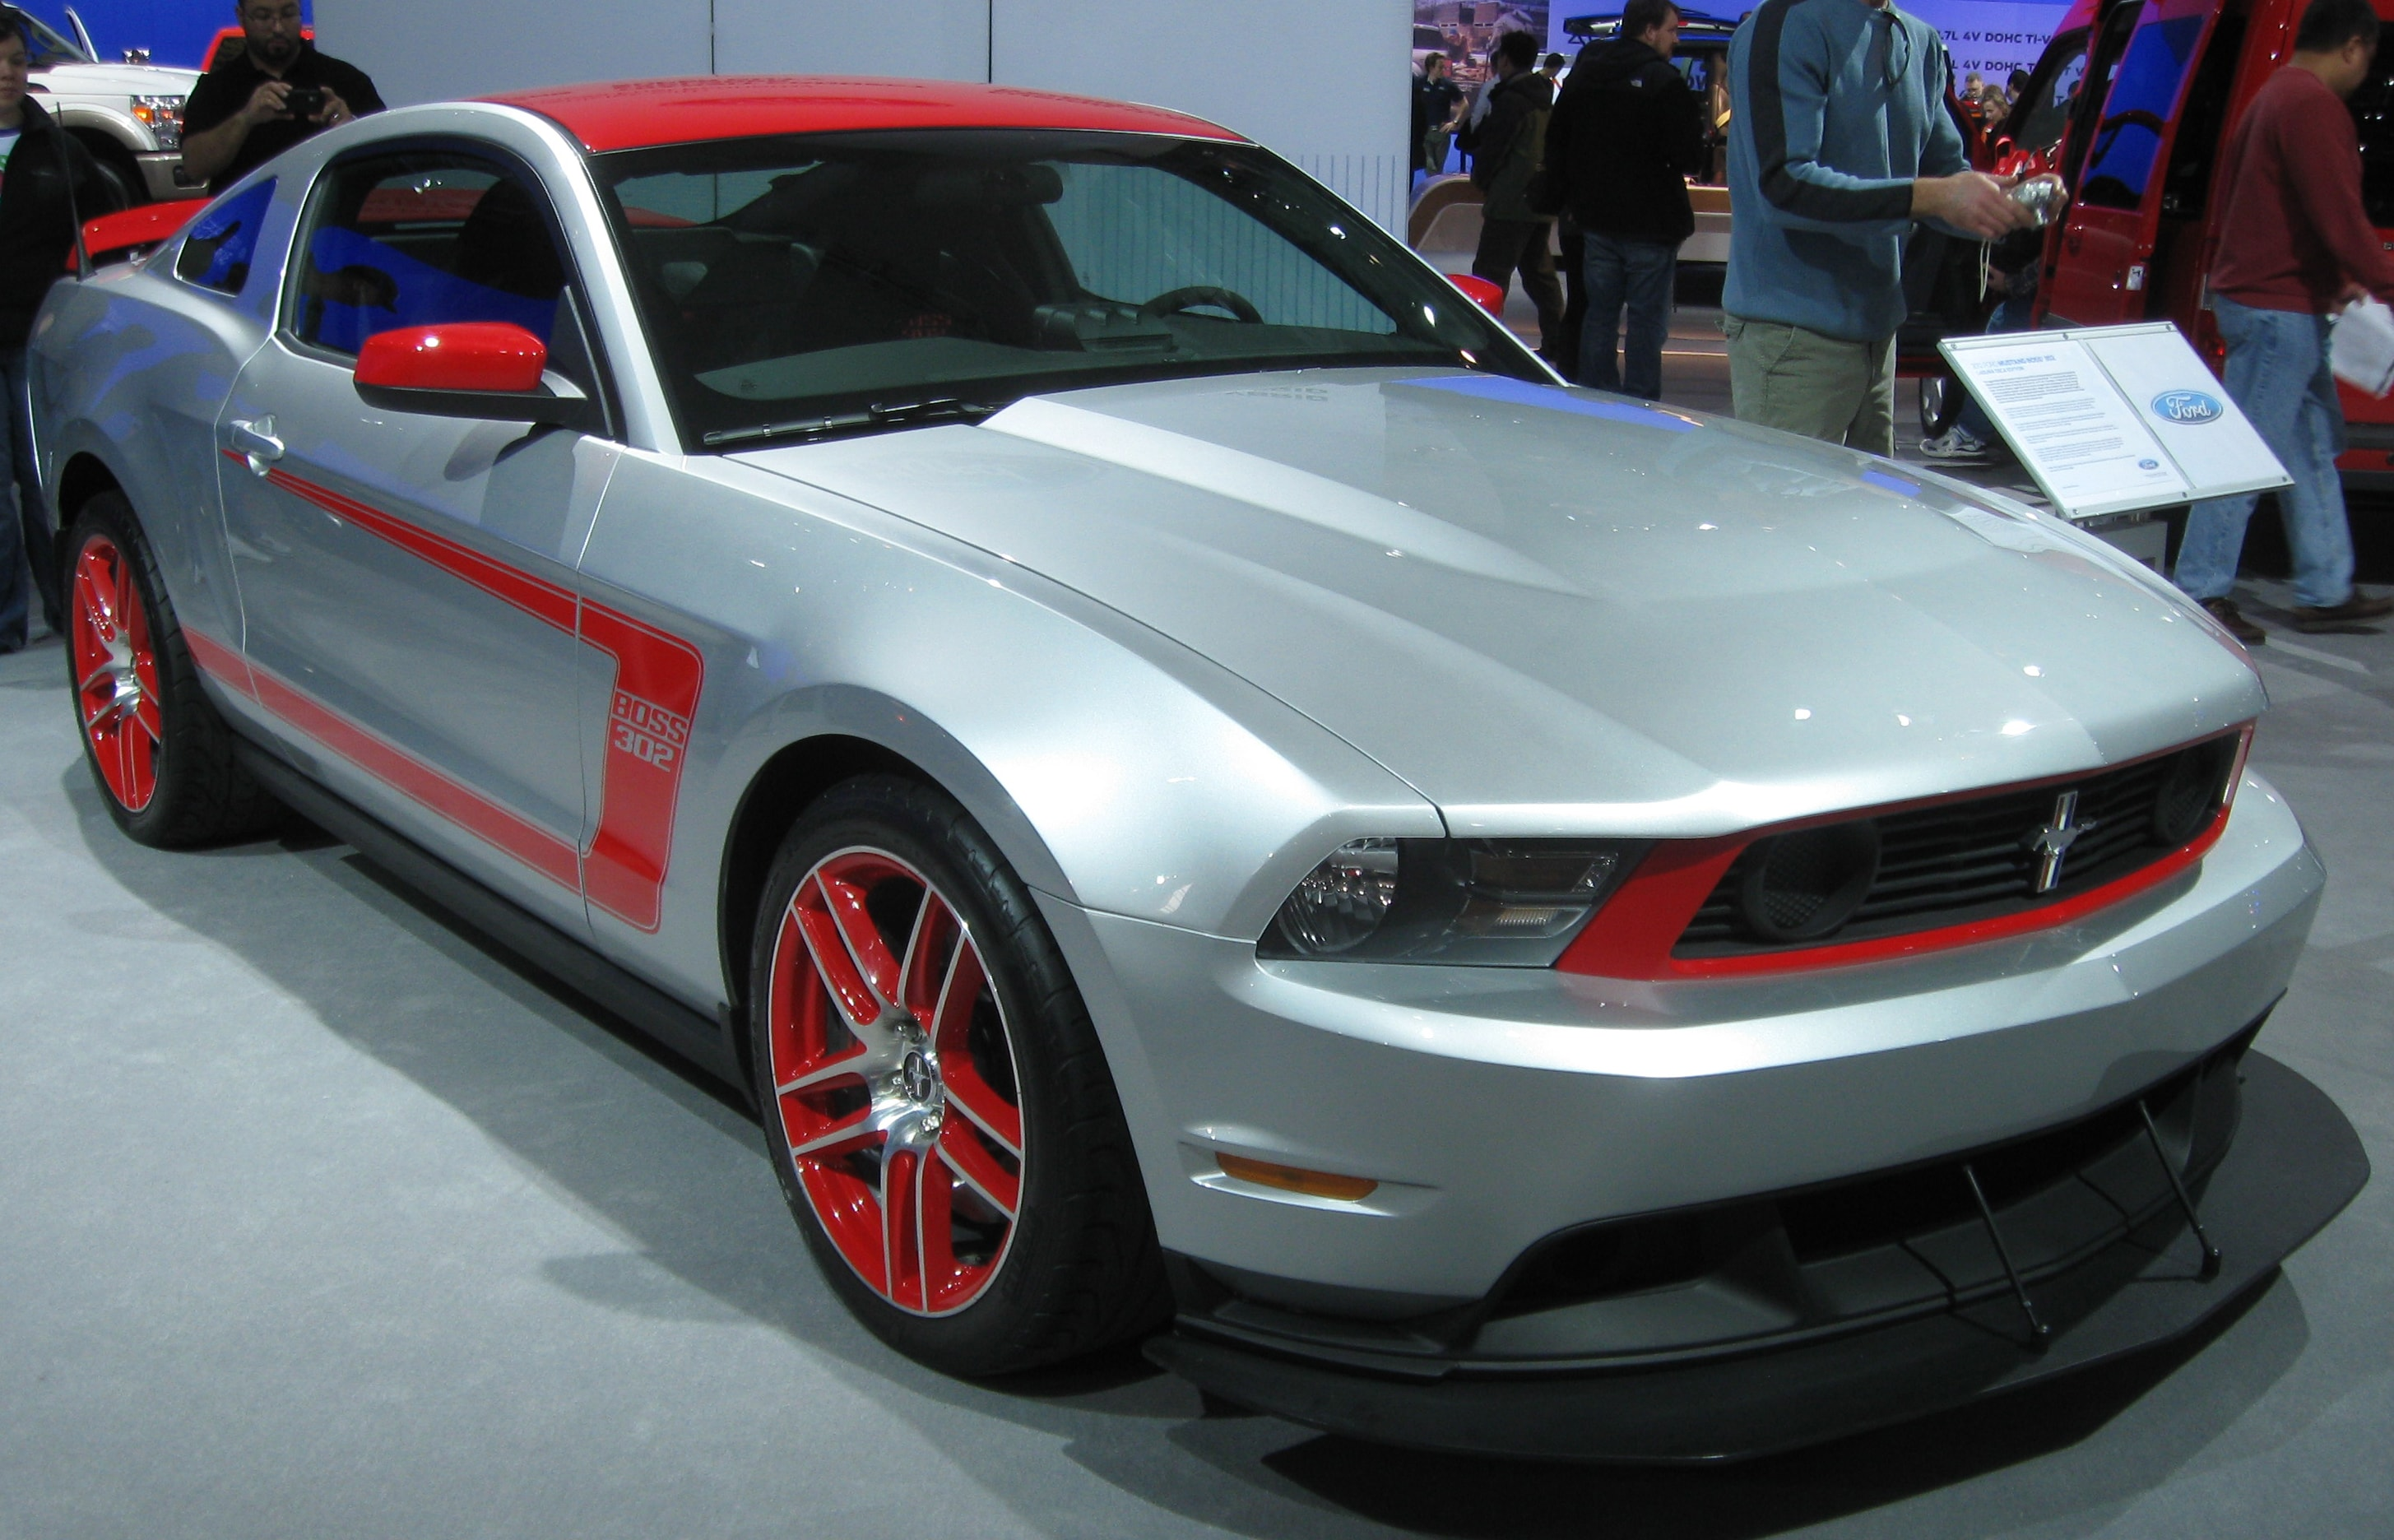 Ford Mustang Boss 302 Laguna Seca For mobile